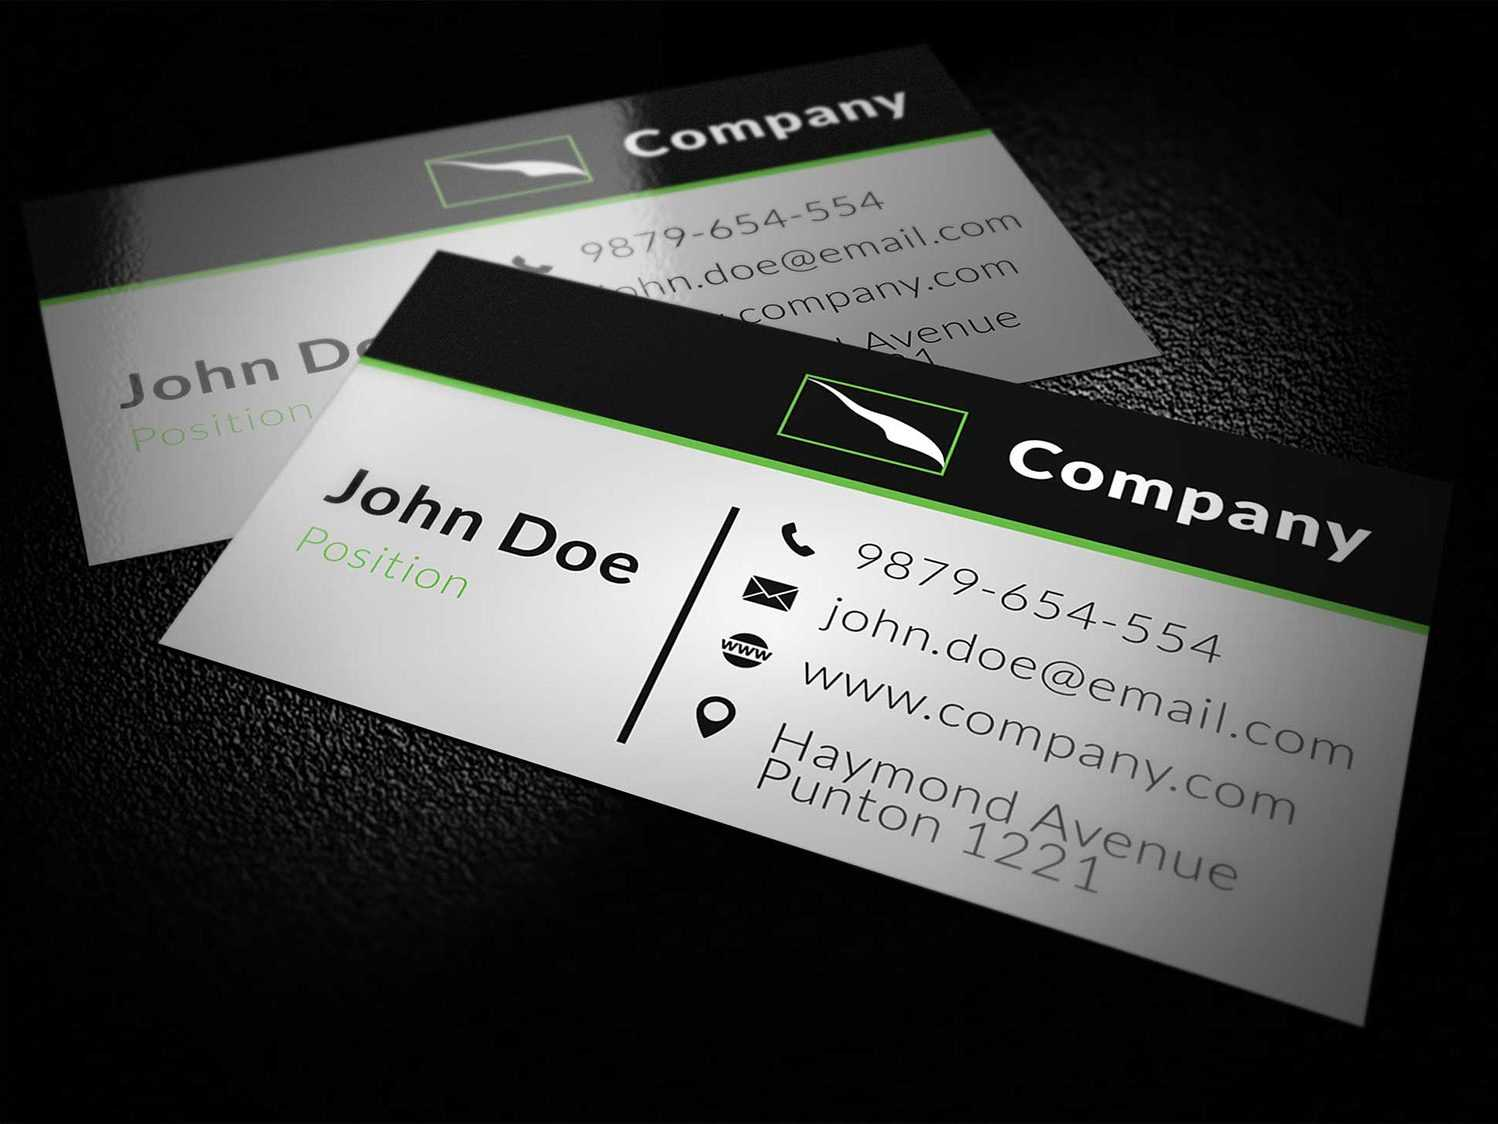 Corporate Business Card Template Vol.2 - Business Cards Lab Regarding Email Business Card Templates